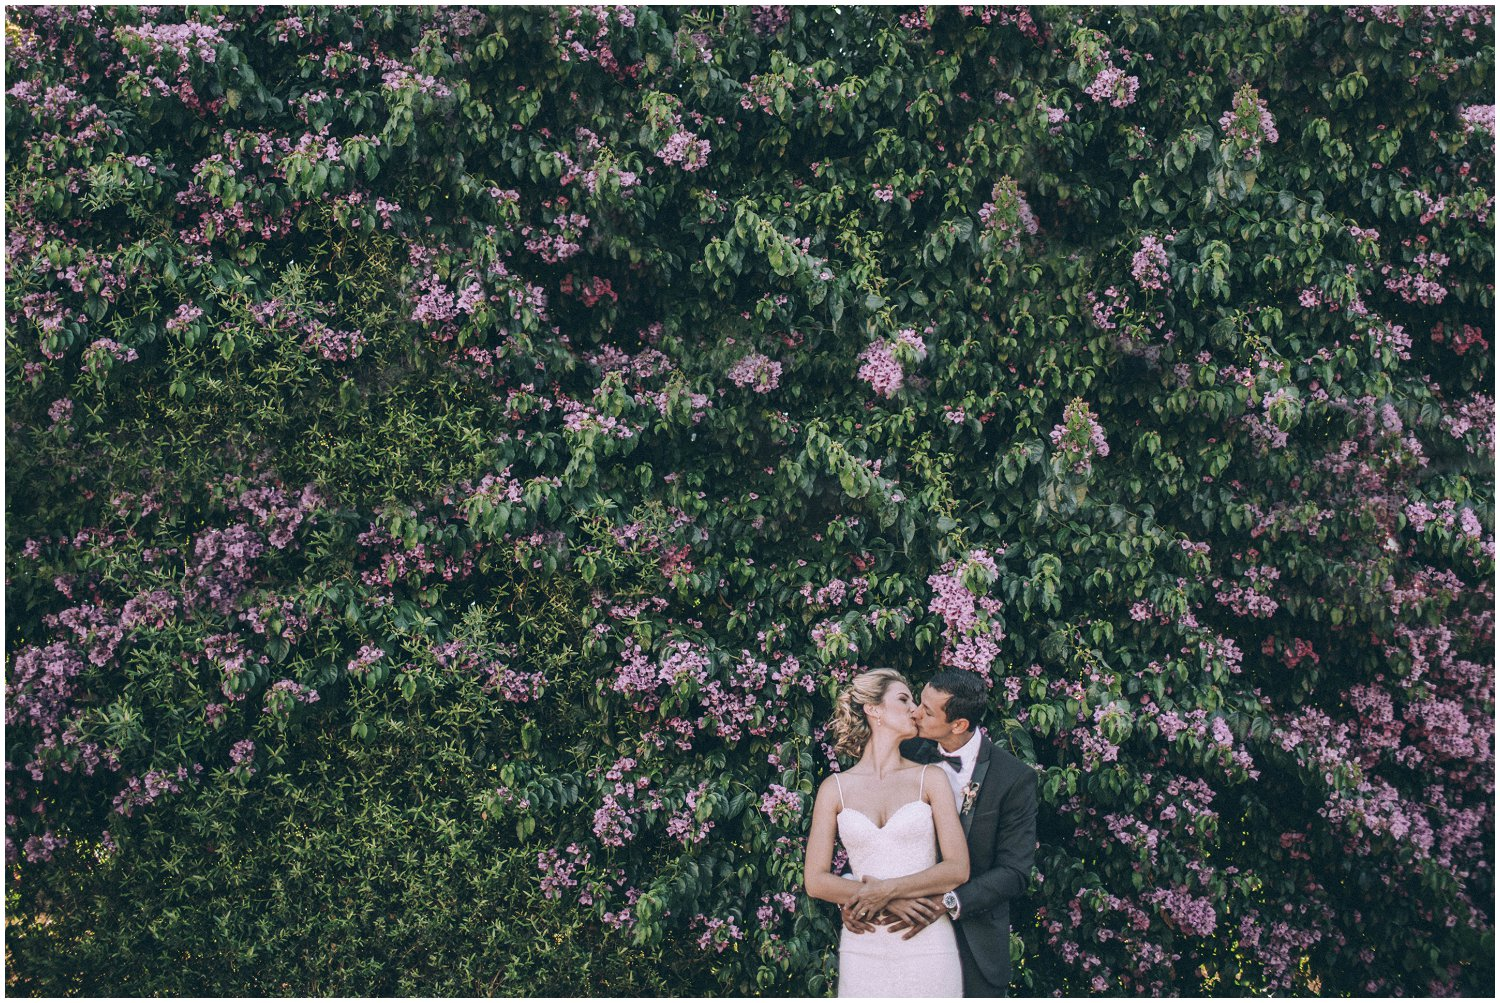 Top Artistic Creative Documentary Wedding Photographer Cape Town South Africa Rue Kruger_0140.jpg